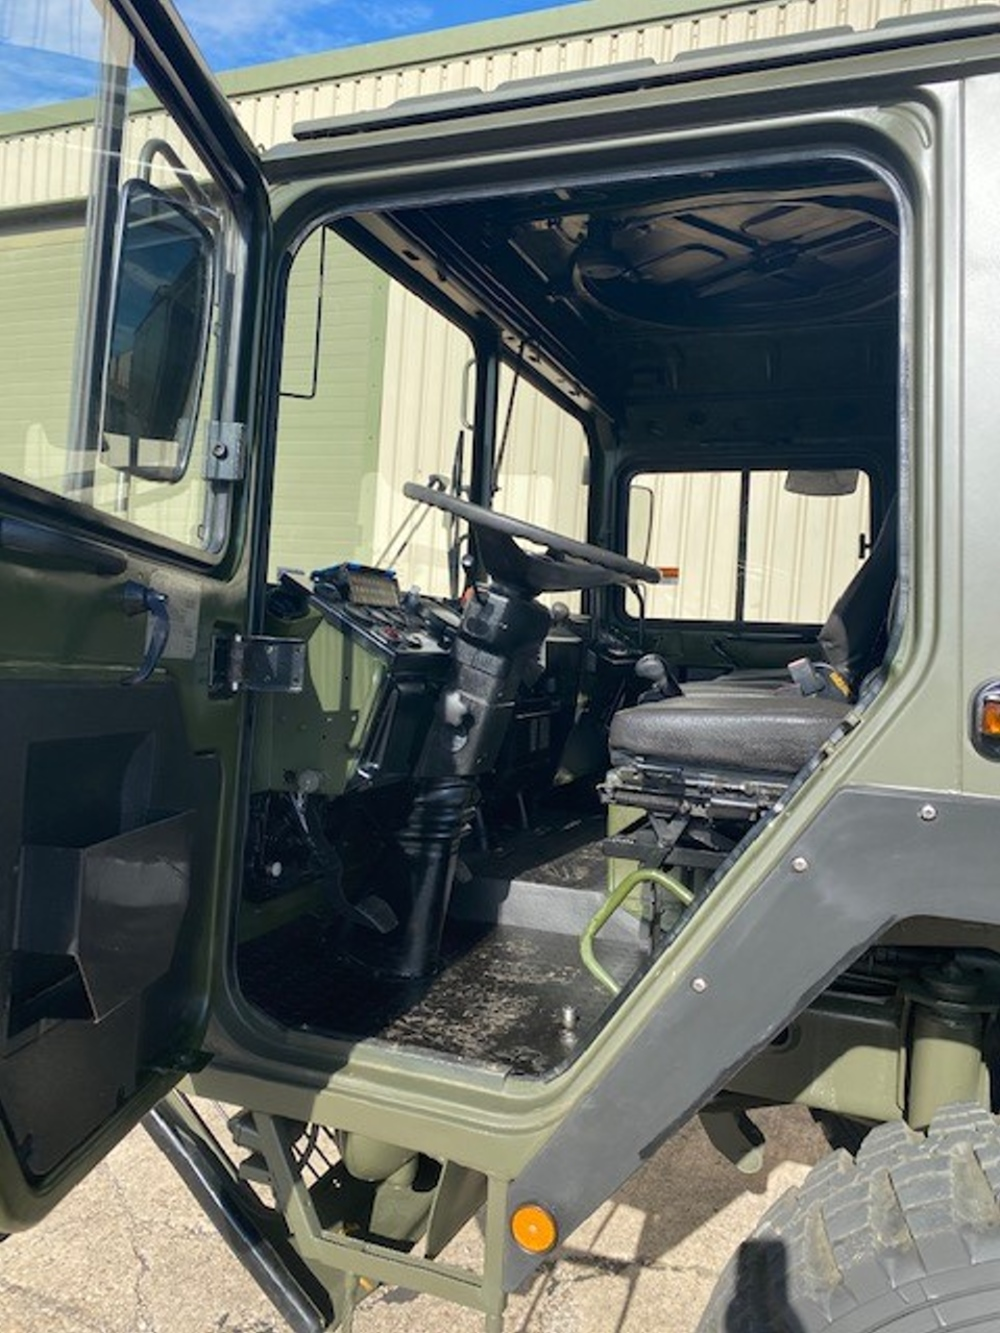 MAN CAT A1 6x6 Tractor units   used military vehicles, MOD surplus for sale